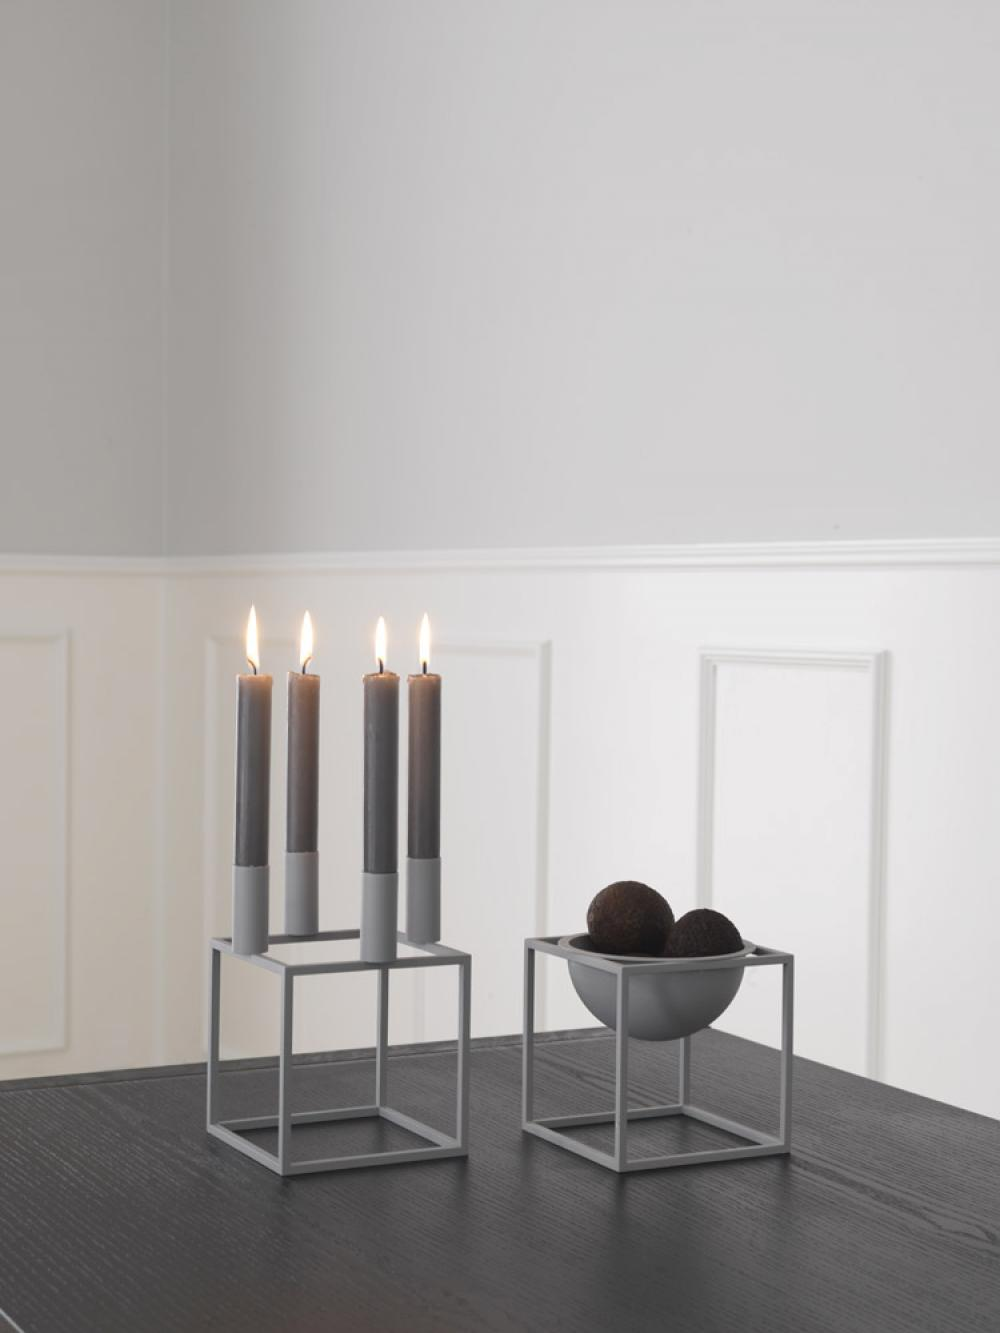 kerzenhalter kubus 4 von by lassen im onlineshop. Black Bedroom Furniture Sets. Home Design Ideas